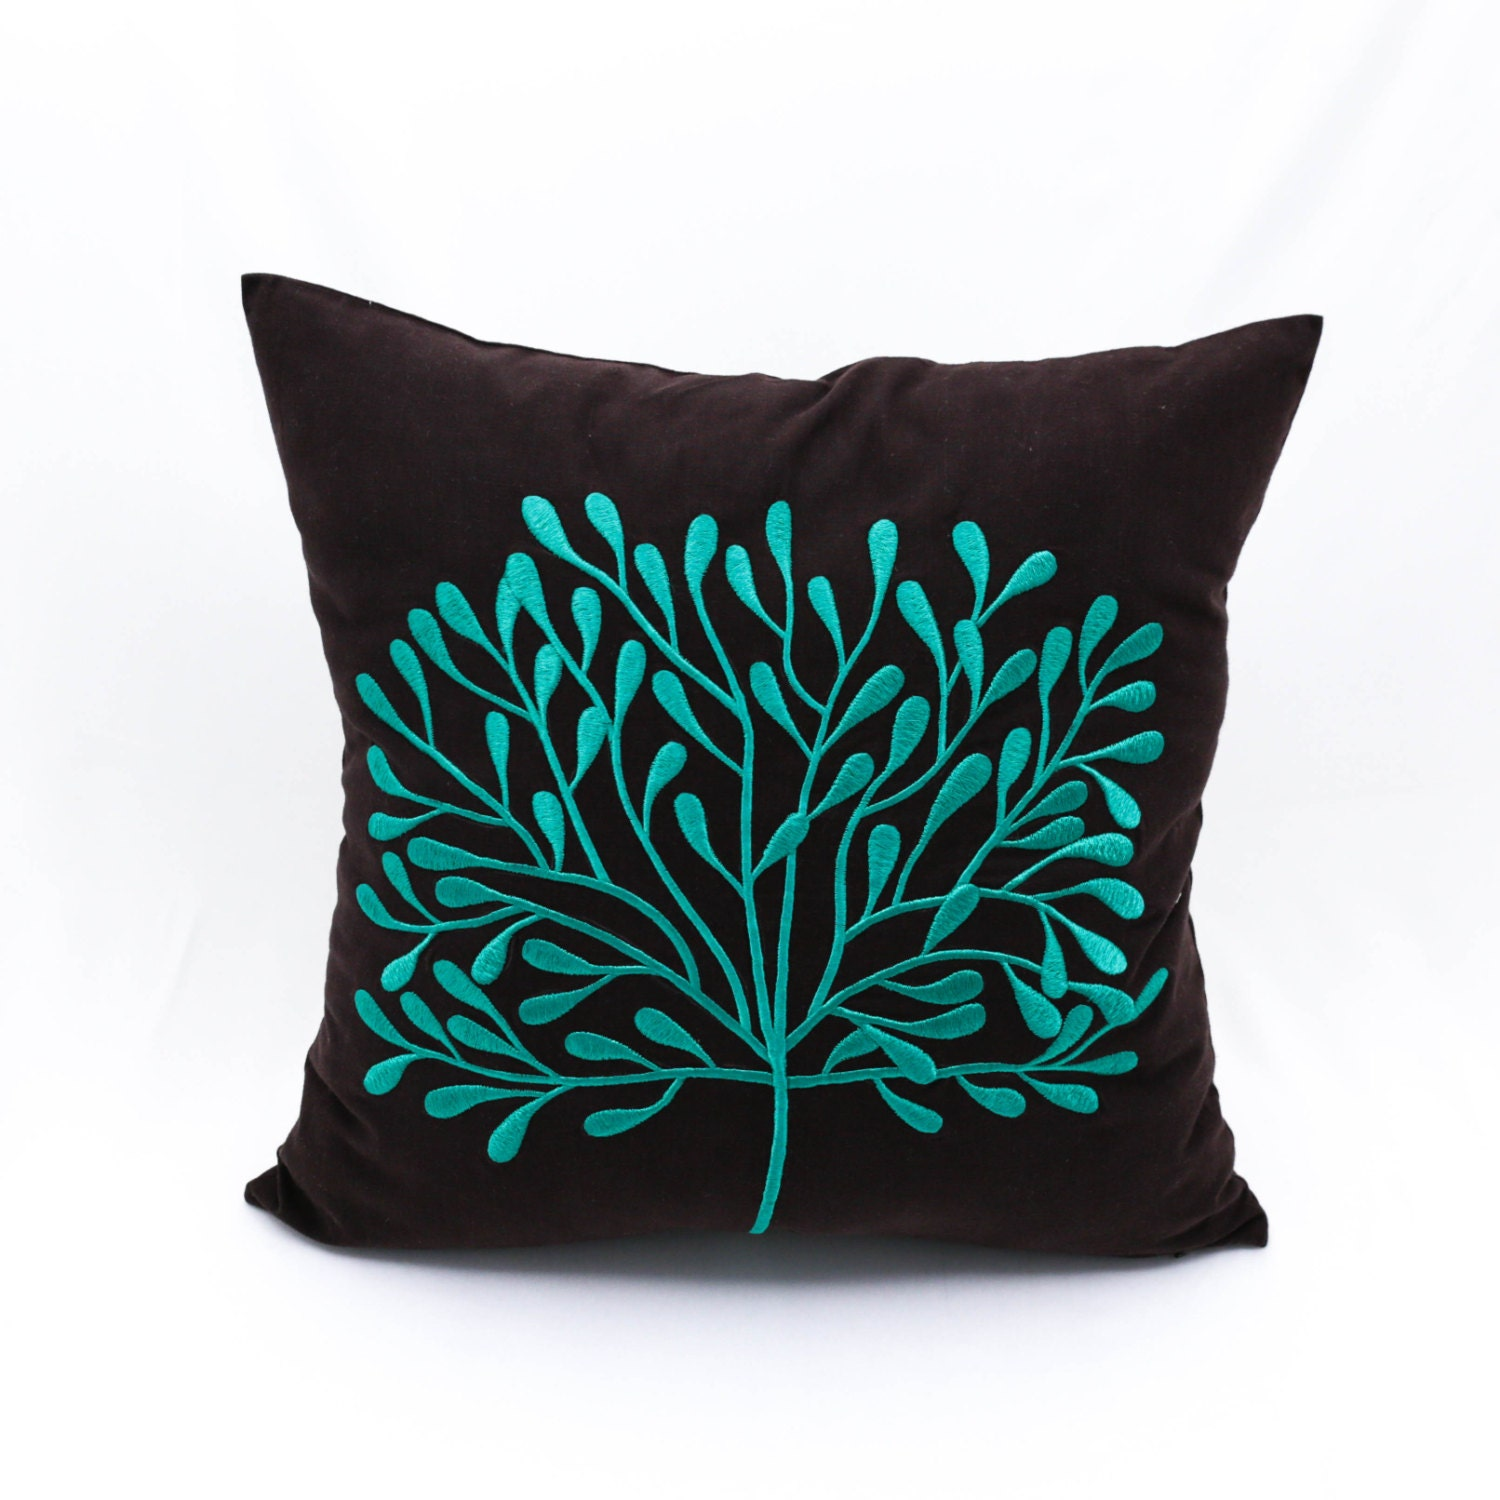 Modern Teal Decorative Throw Pillow : Teal Decorative Pillow Cover Home decor Dark Brown Linen